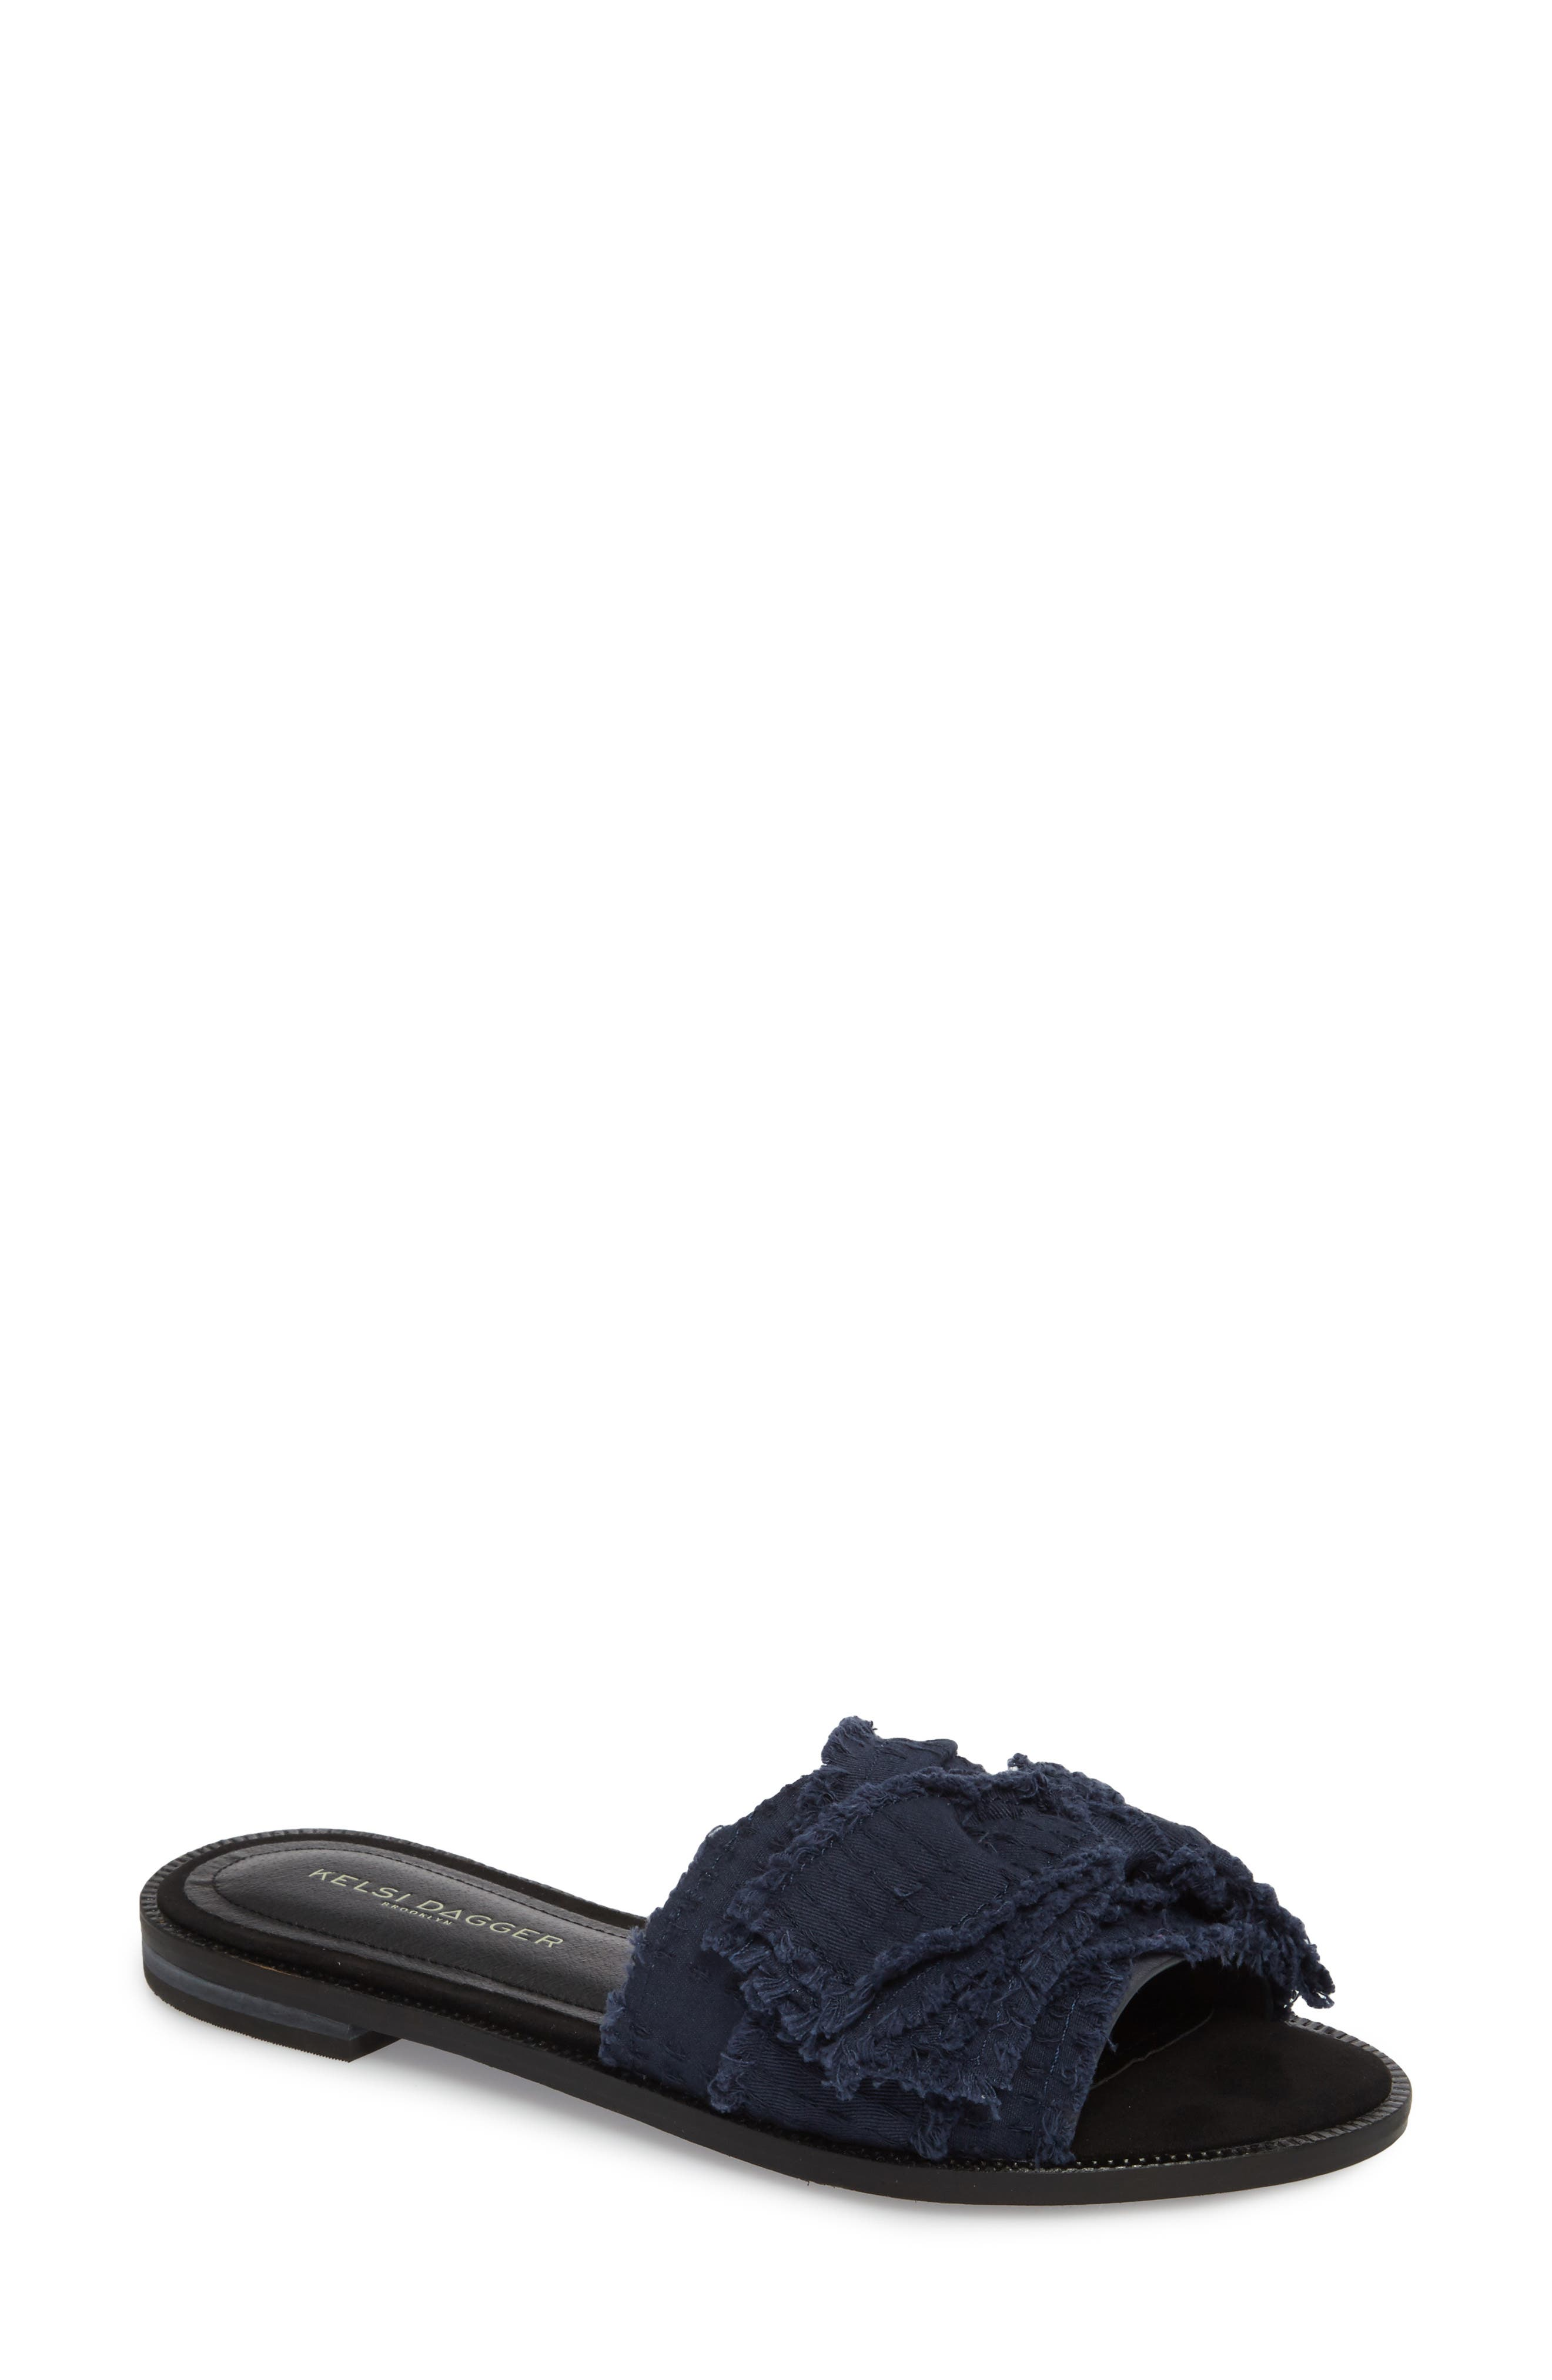 Revere Bow Slide Sandal,                         Main,                         color, BLACK/ NAVY LEATHER